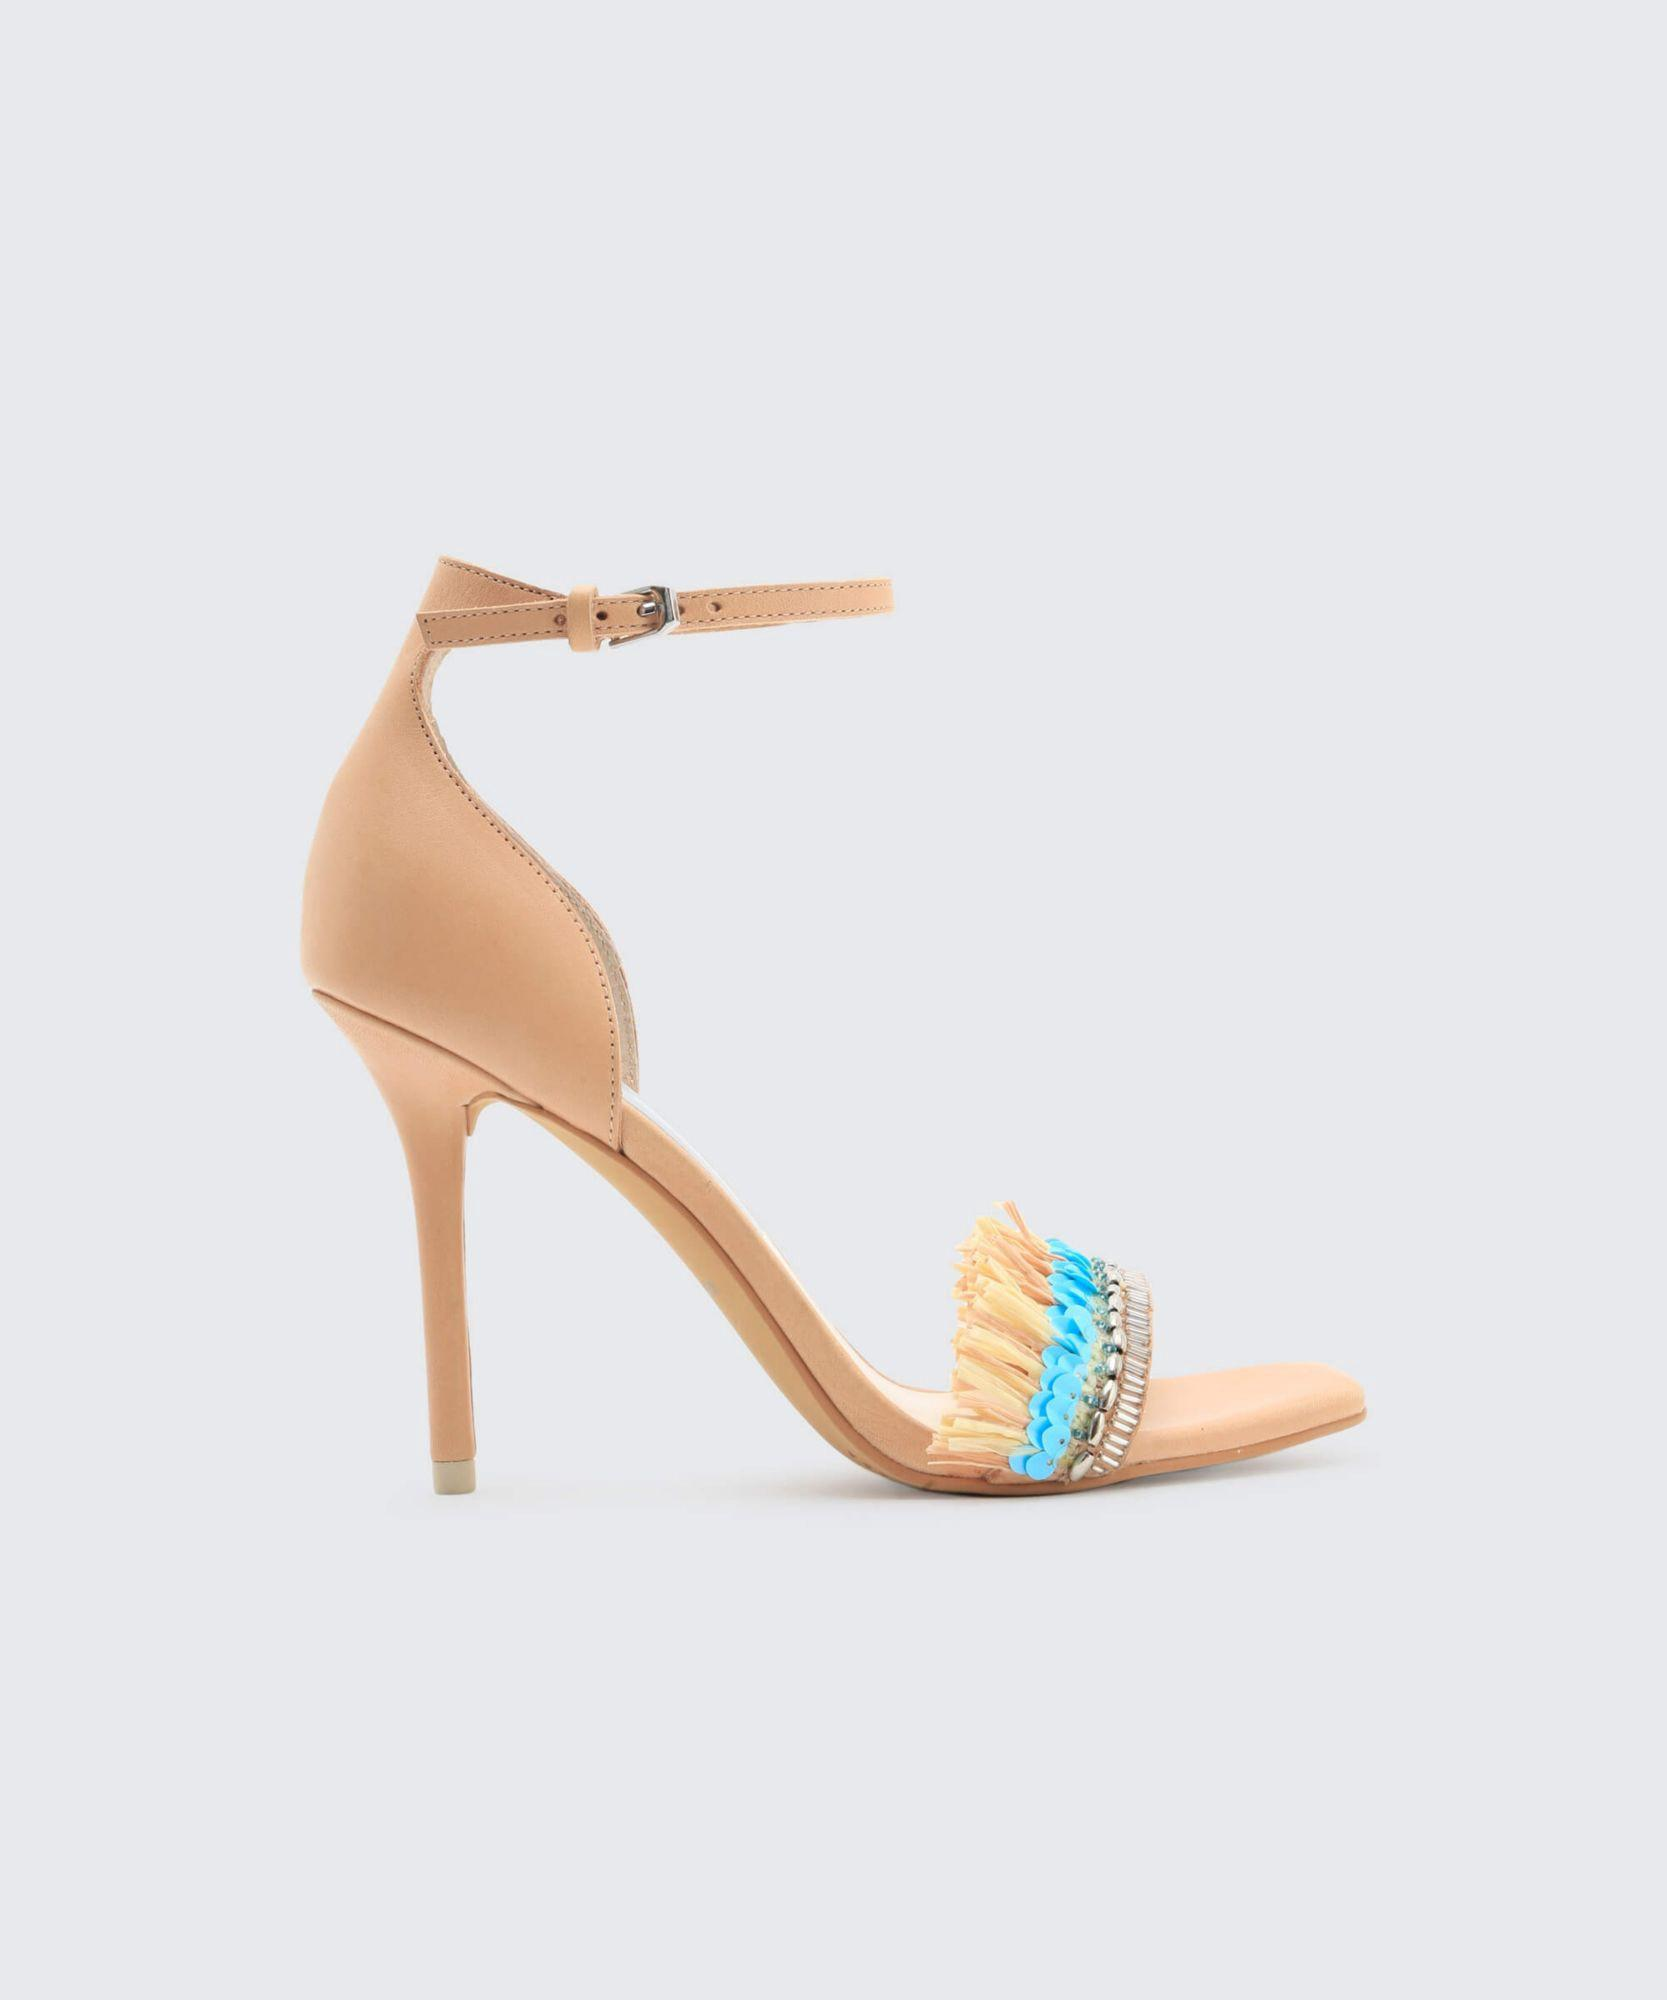 236e6cc86c76 Dolce Vita Women s Hyper Suede   Embellished Raffia High-Heel Sandals In  Neutral Pattern